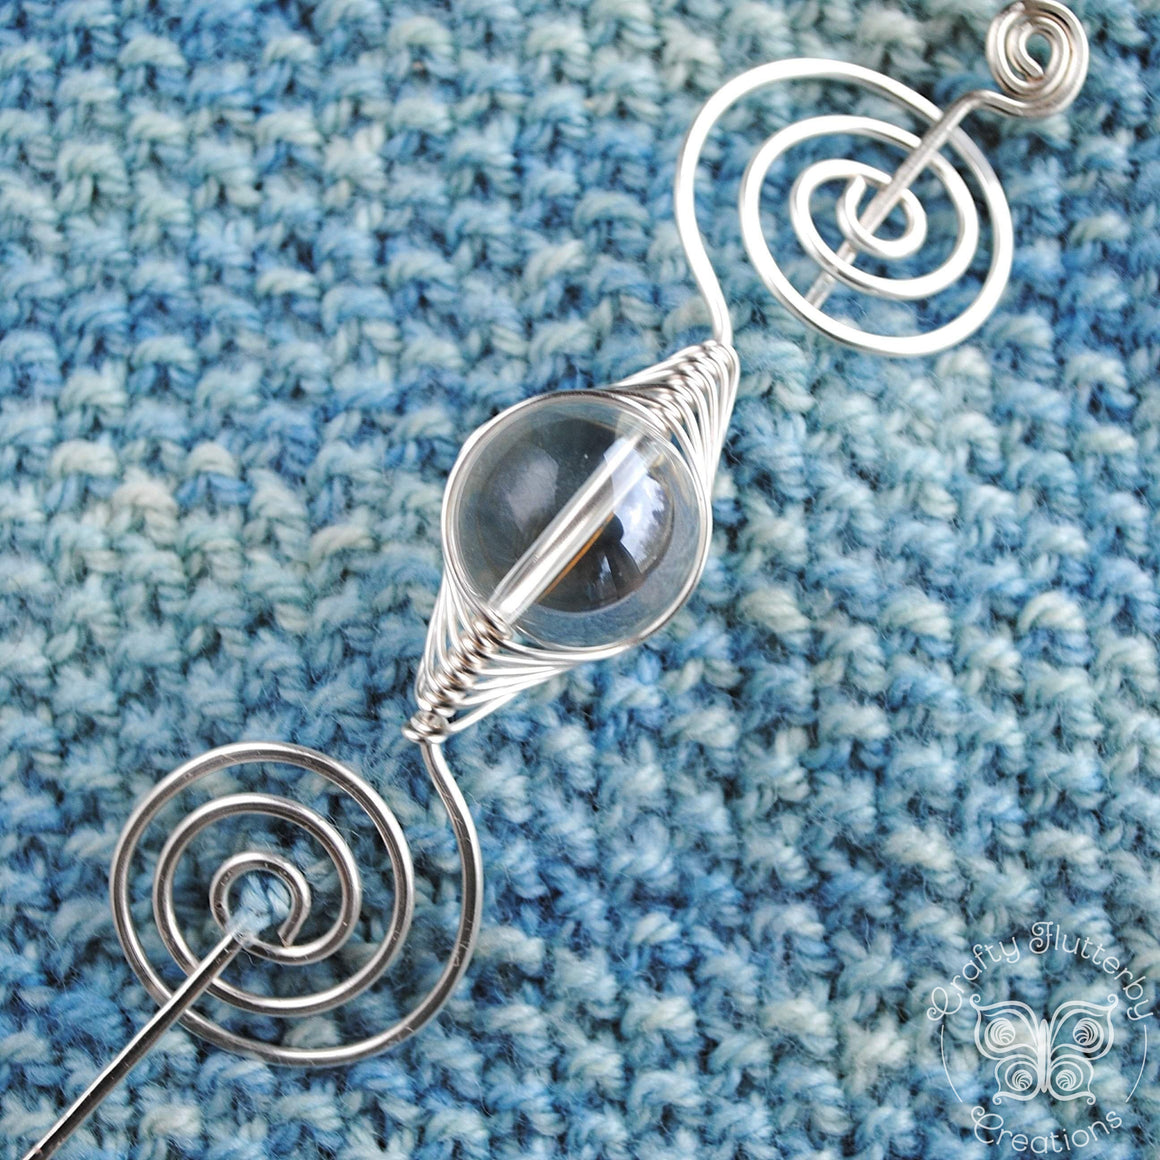 Shawl Pin, Clear Glass Shawl Pin - Large Silver - Crafty Flutterby Creations